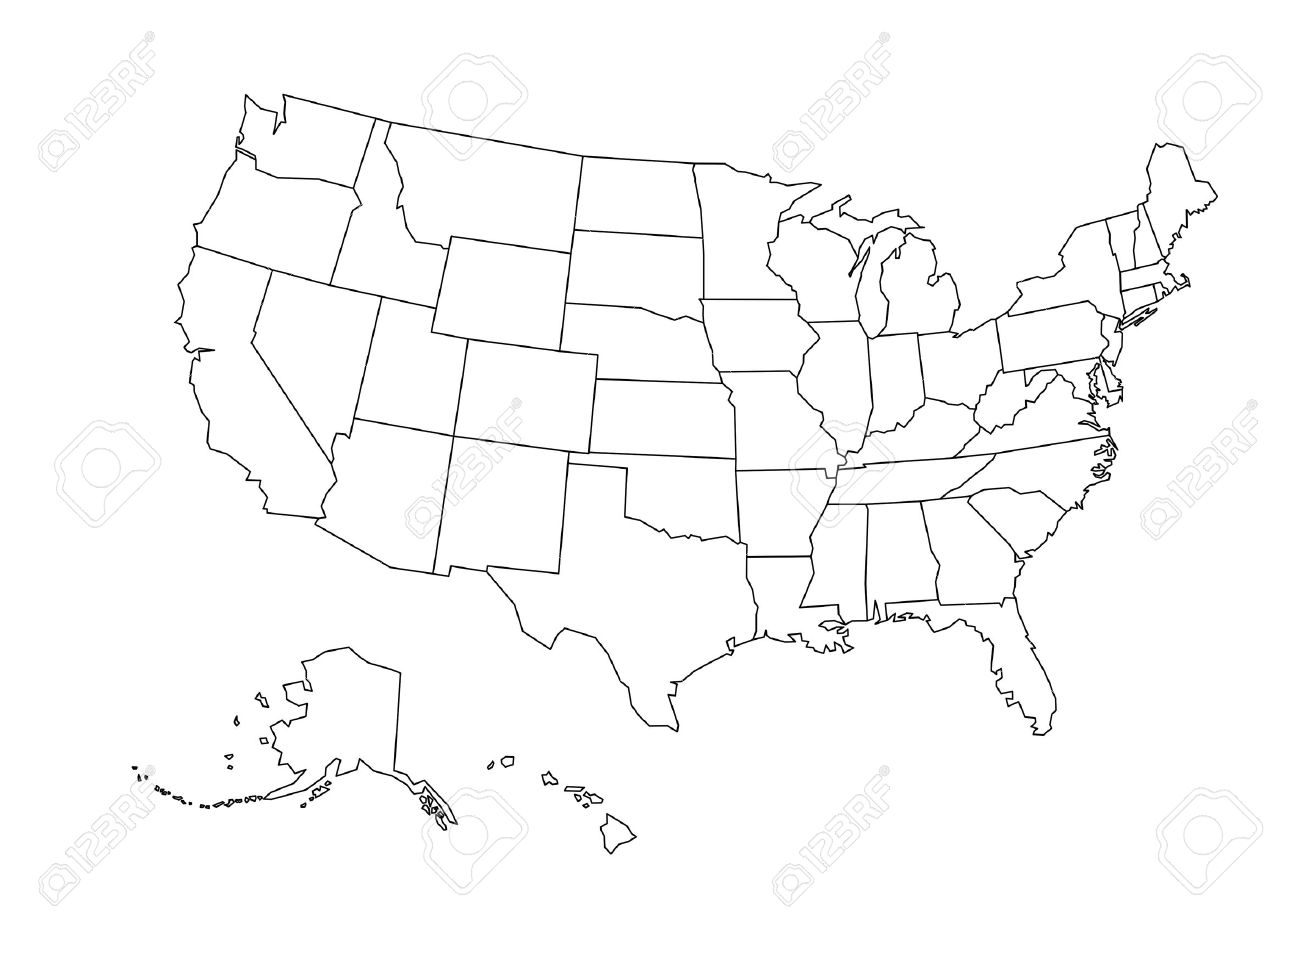 Blank Outline Map Of United States Of America Simplified Vector Map Made Of Black Outline